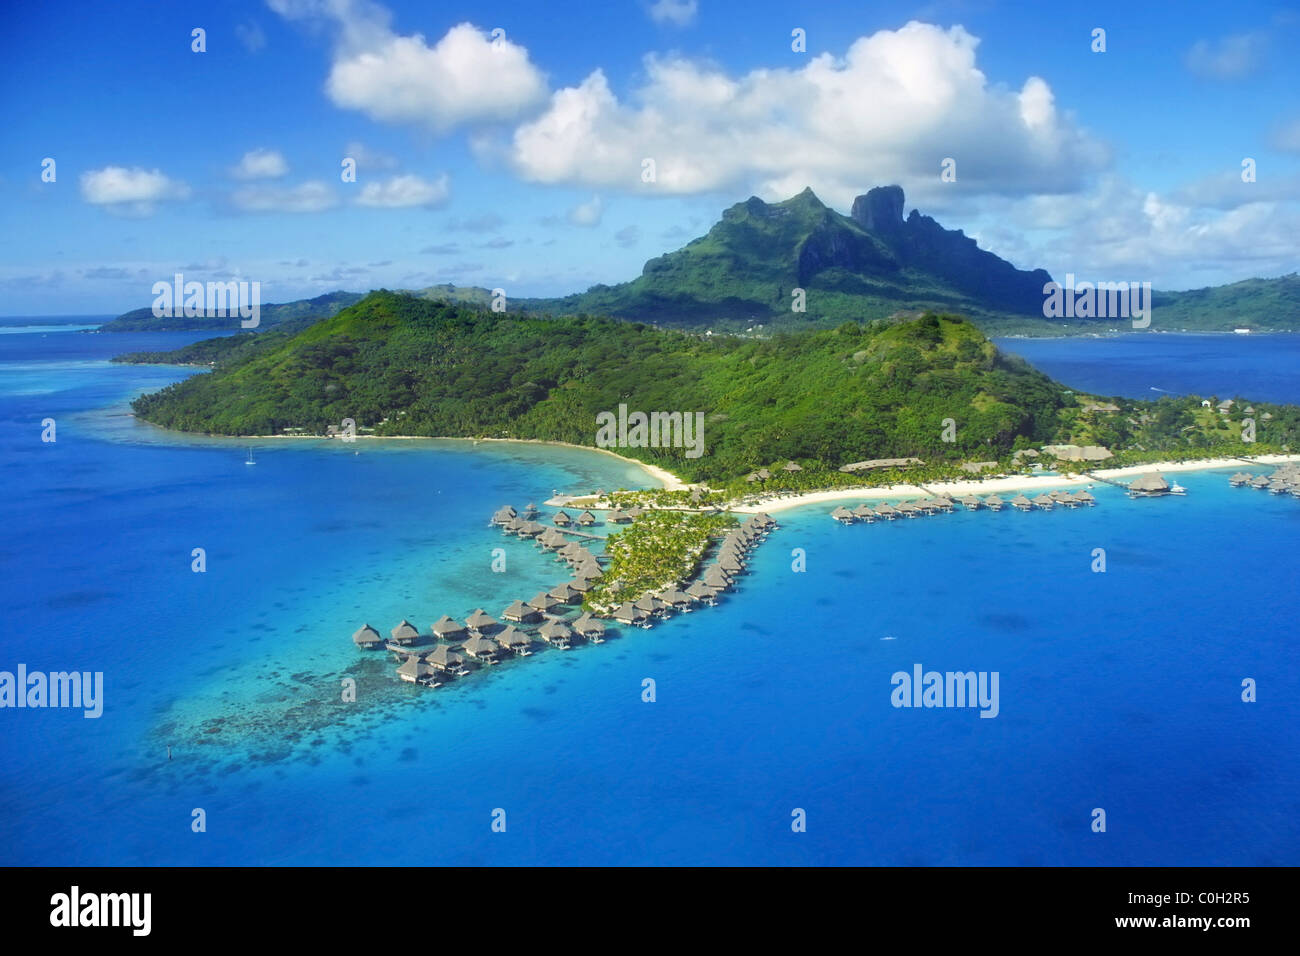 Aerial View of Bora Bora with Mount Otemanu in background and coral reef. Stock Photo